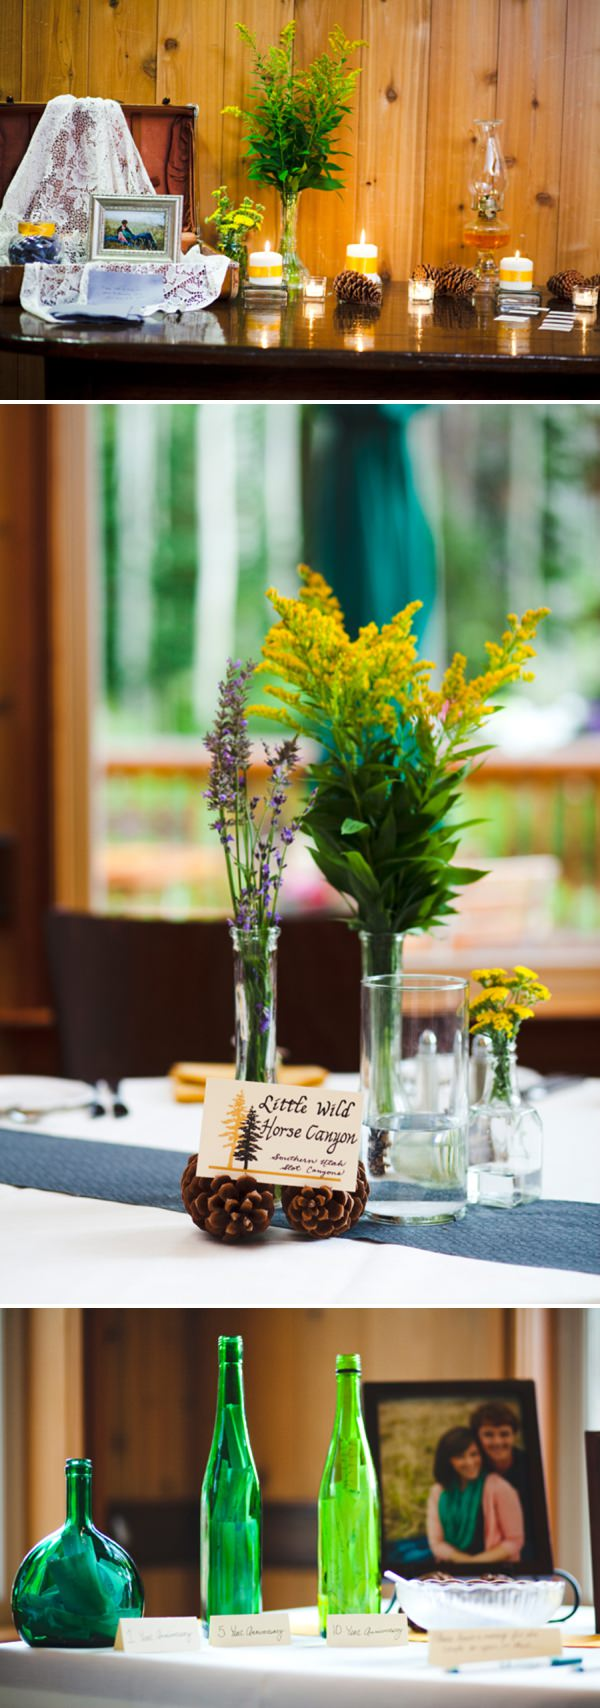 rustic wedding decor http://www.pier23photography.com/